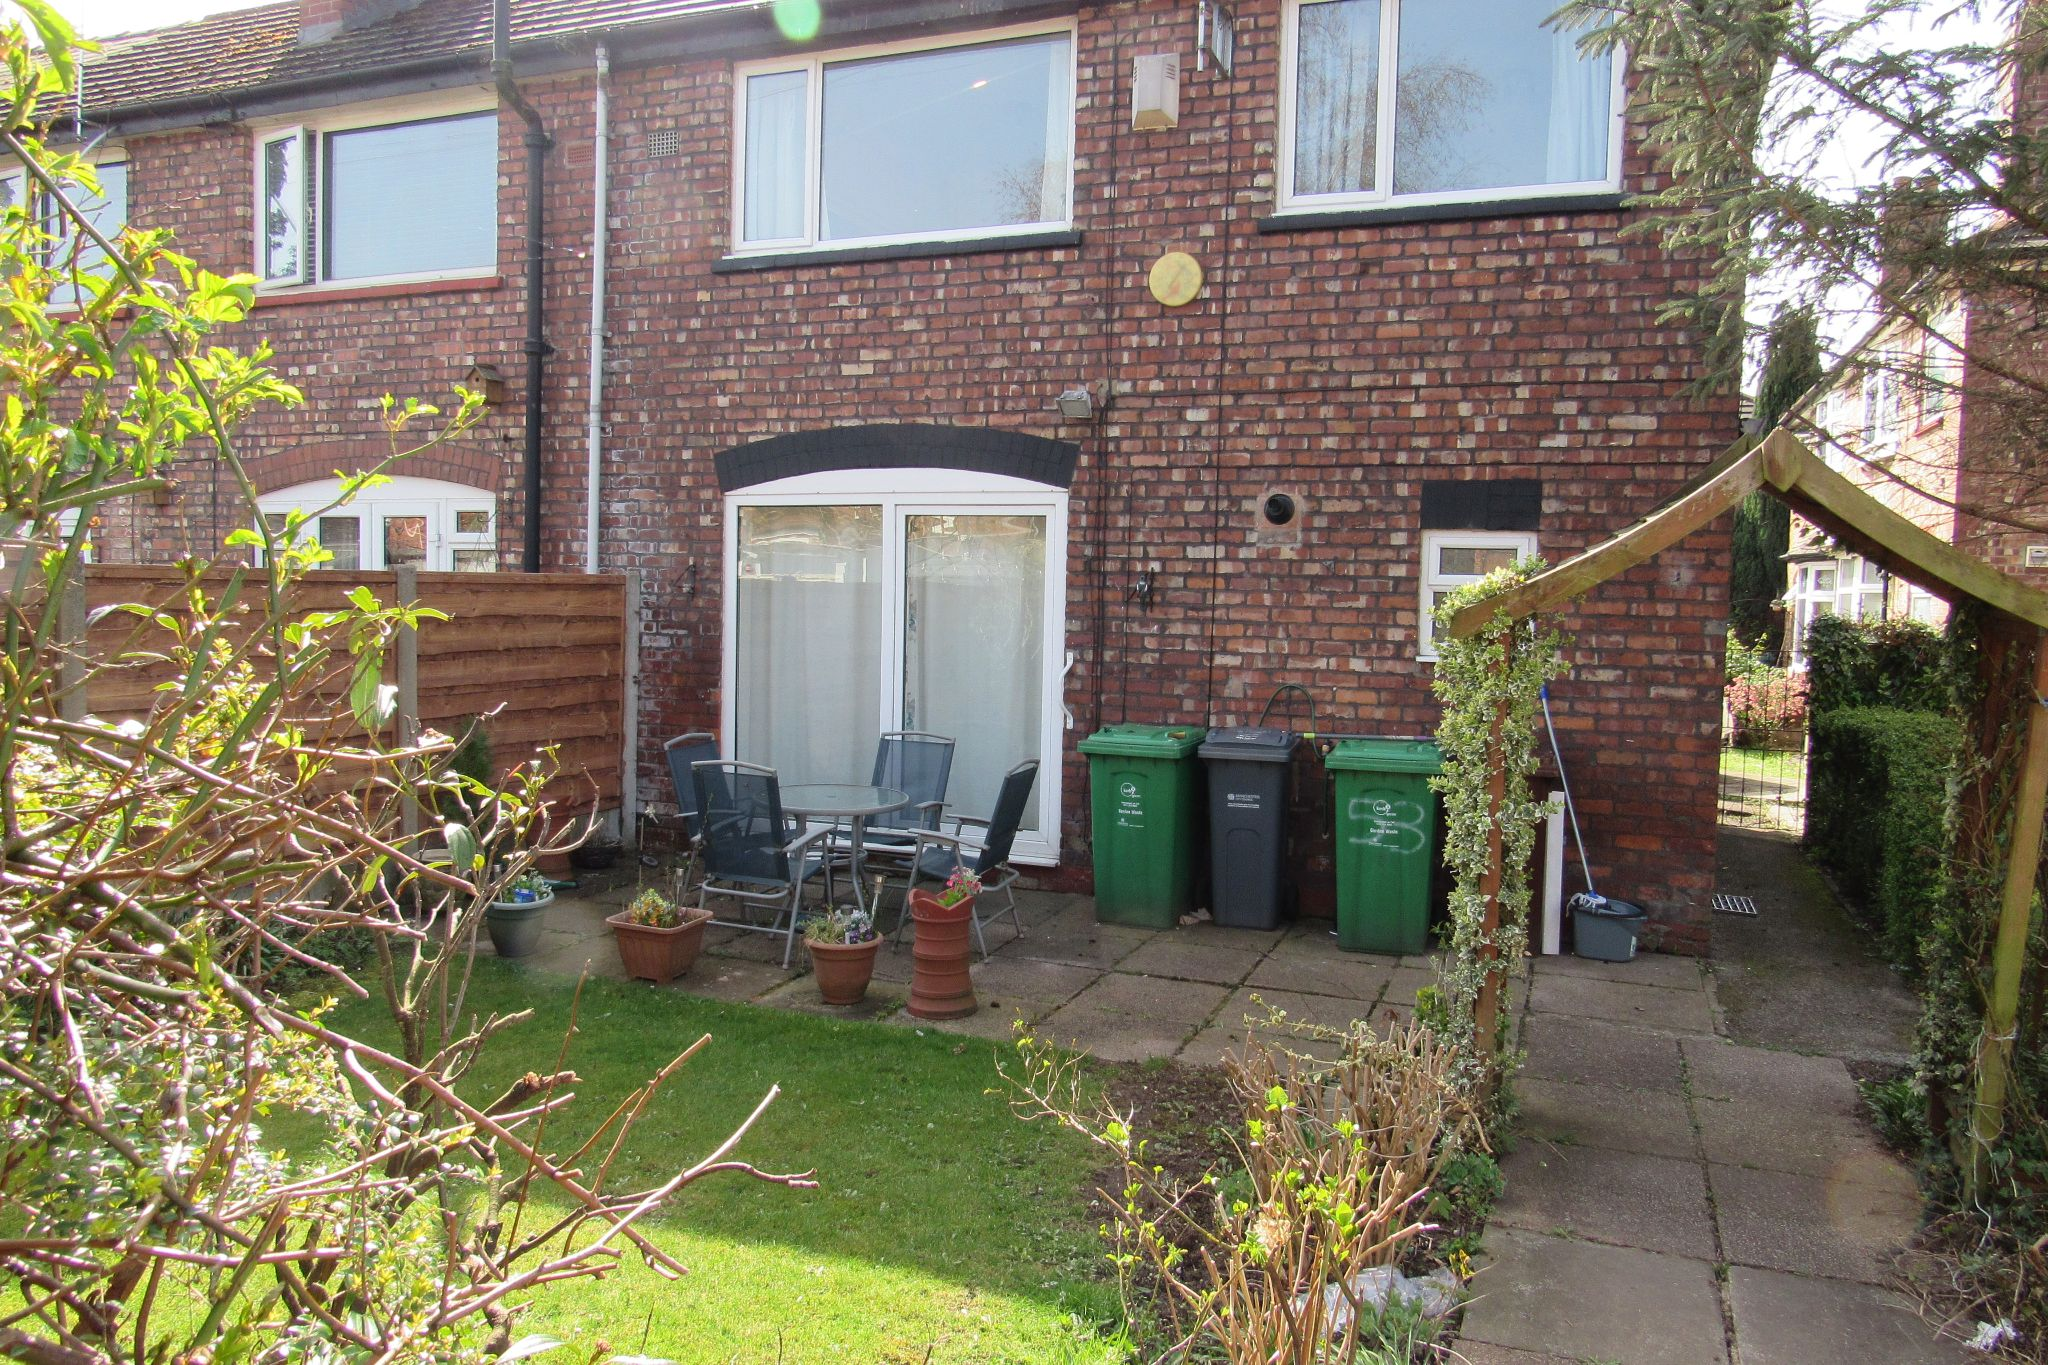 3 bedroom end terraced house SSTC in Manchester - Photograph 2.